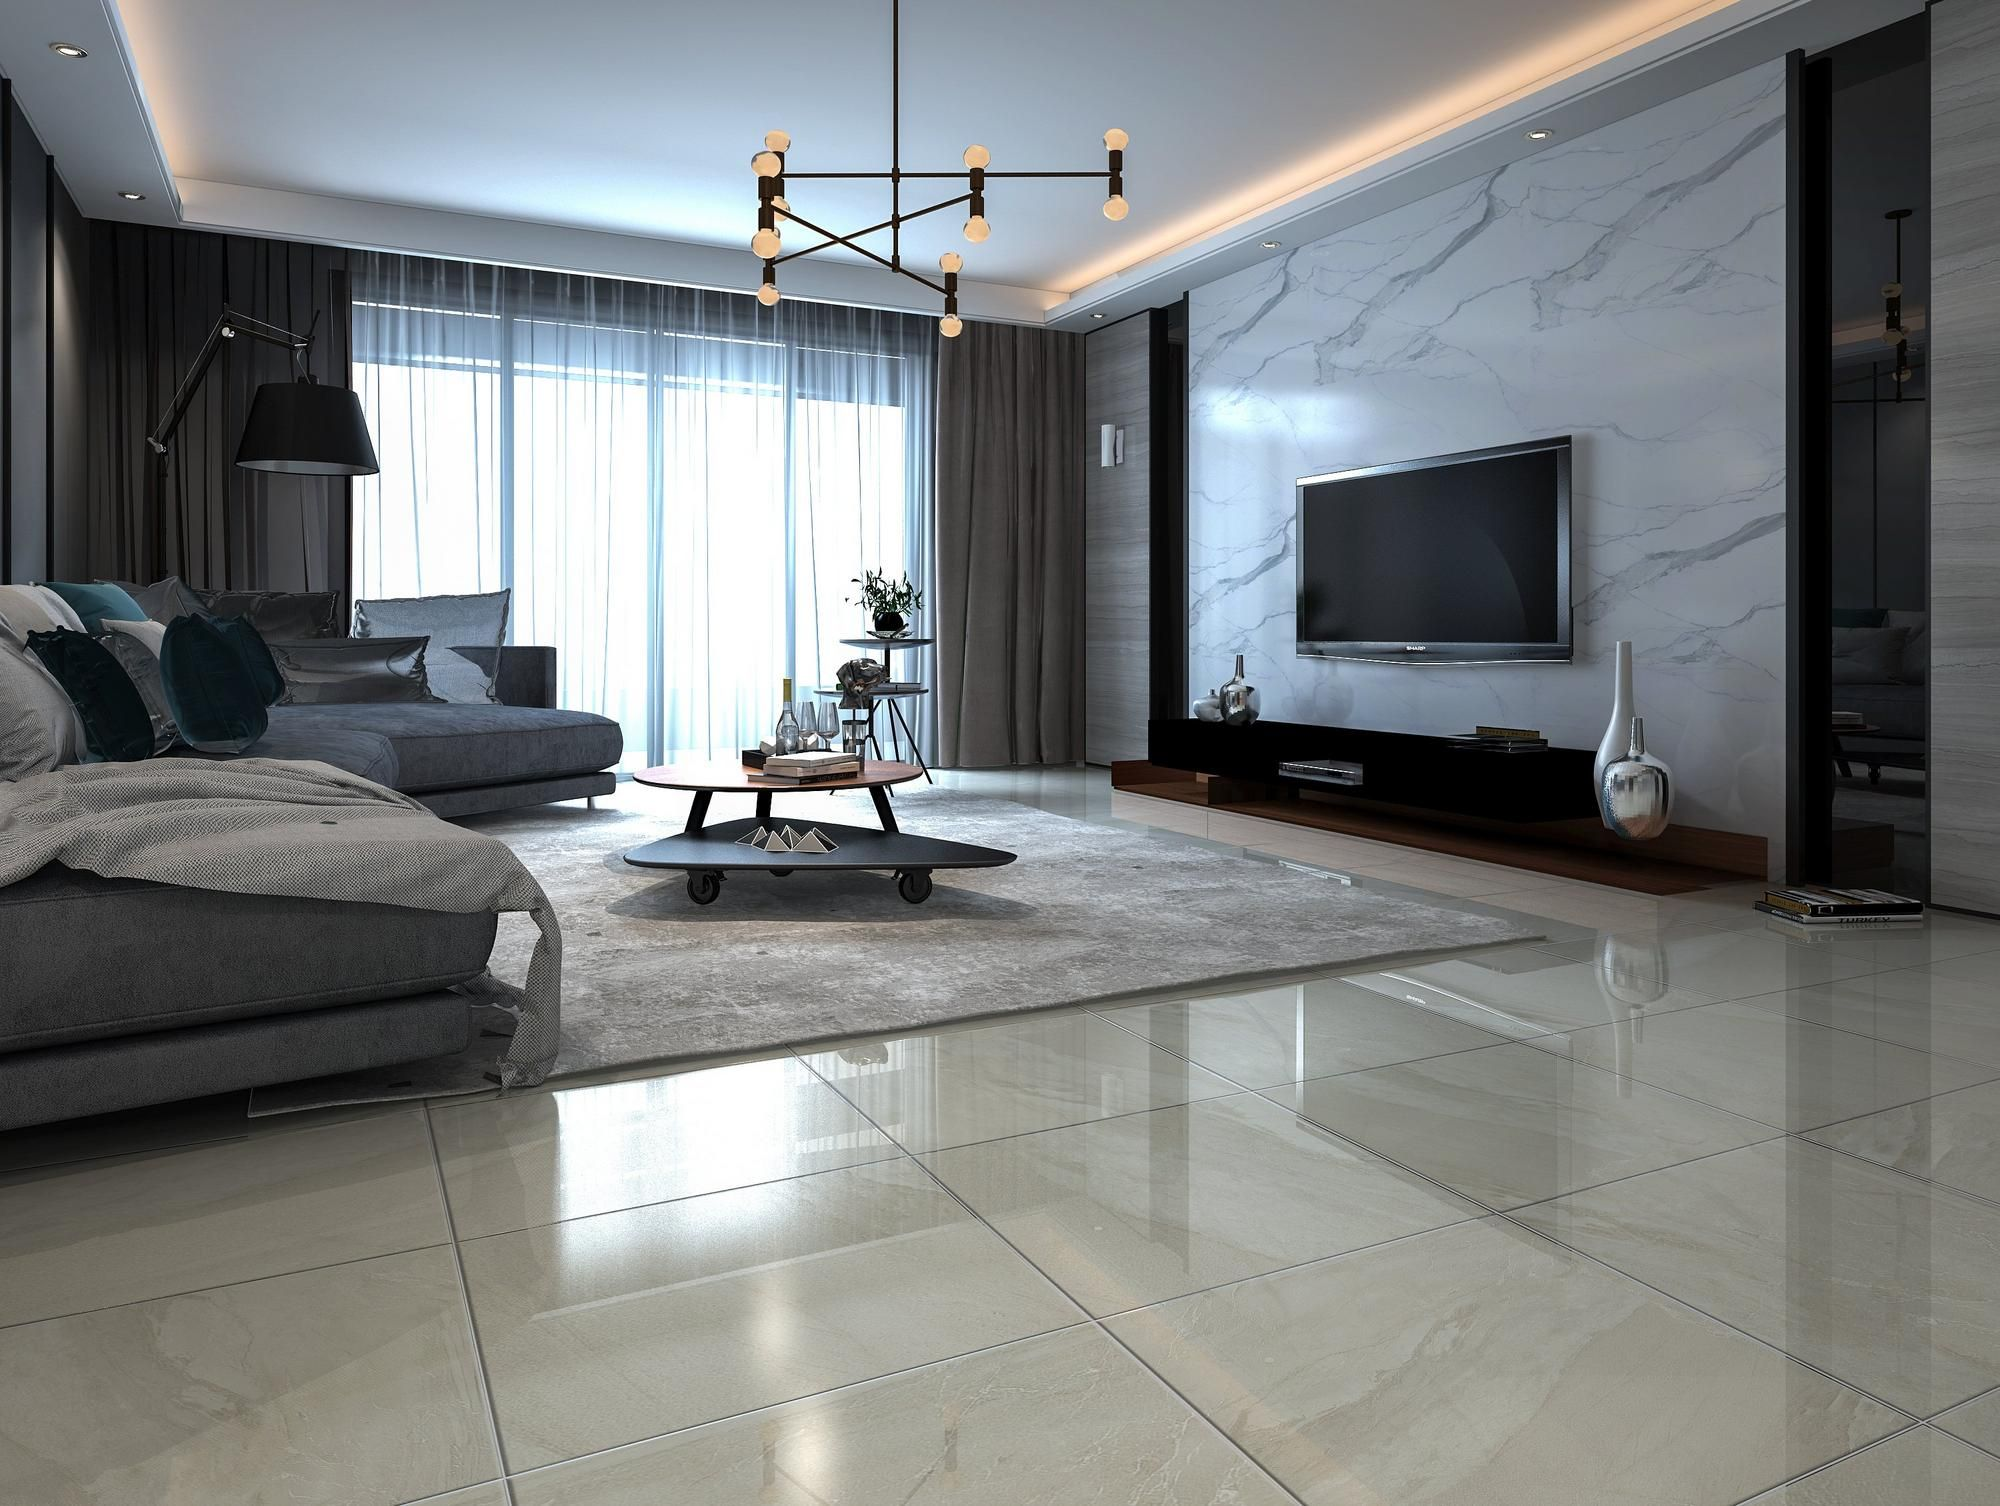 Verona Greige Porcelain Tile in 2020 | Home room design ...